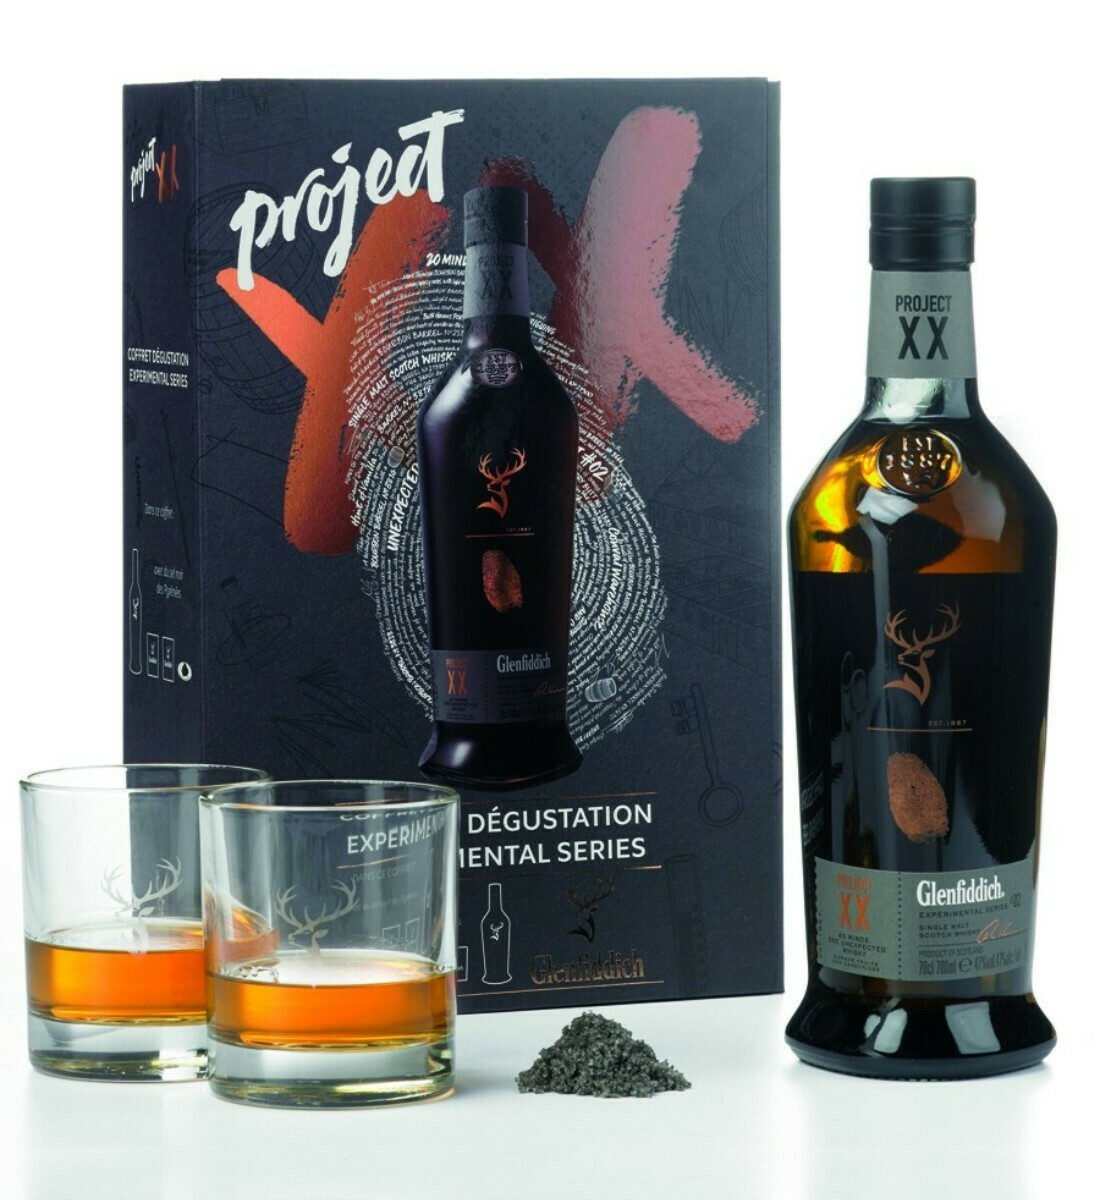 Glenfiddich 'Project XX' Single Malt Scotch Whisky (Limited Edition Gift Box with 2 Glasses)